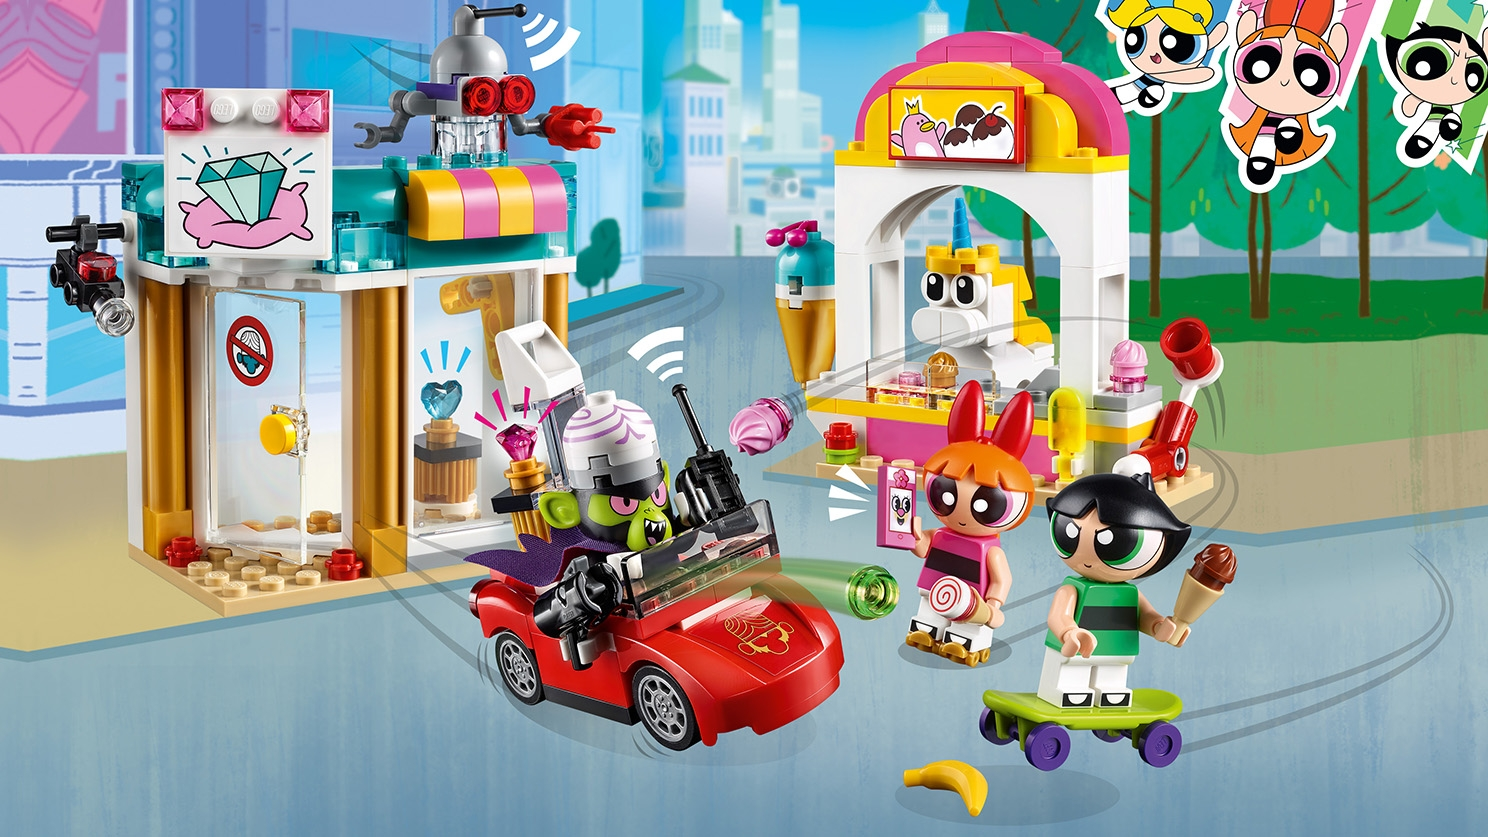 LEGO Powerpuff Girls - 41288 Mojo Jojo Strikes - Powerpuff Girls Blossom and Buttercup has just bought ice creams in the city as Mojo Jojo attacks them from his red car.